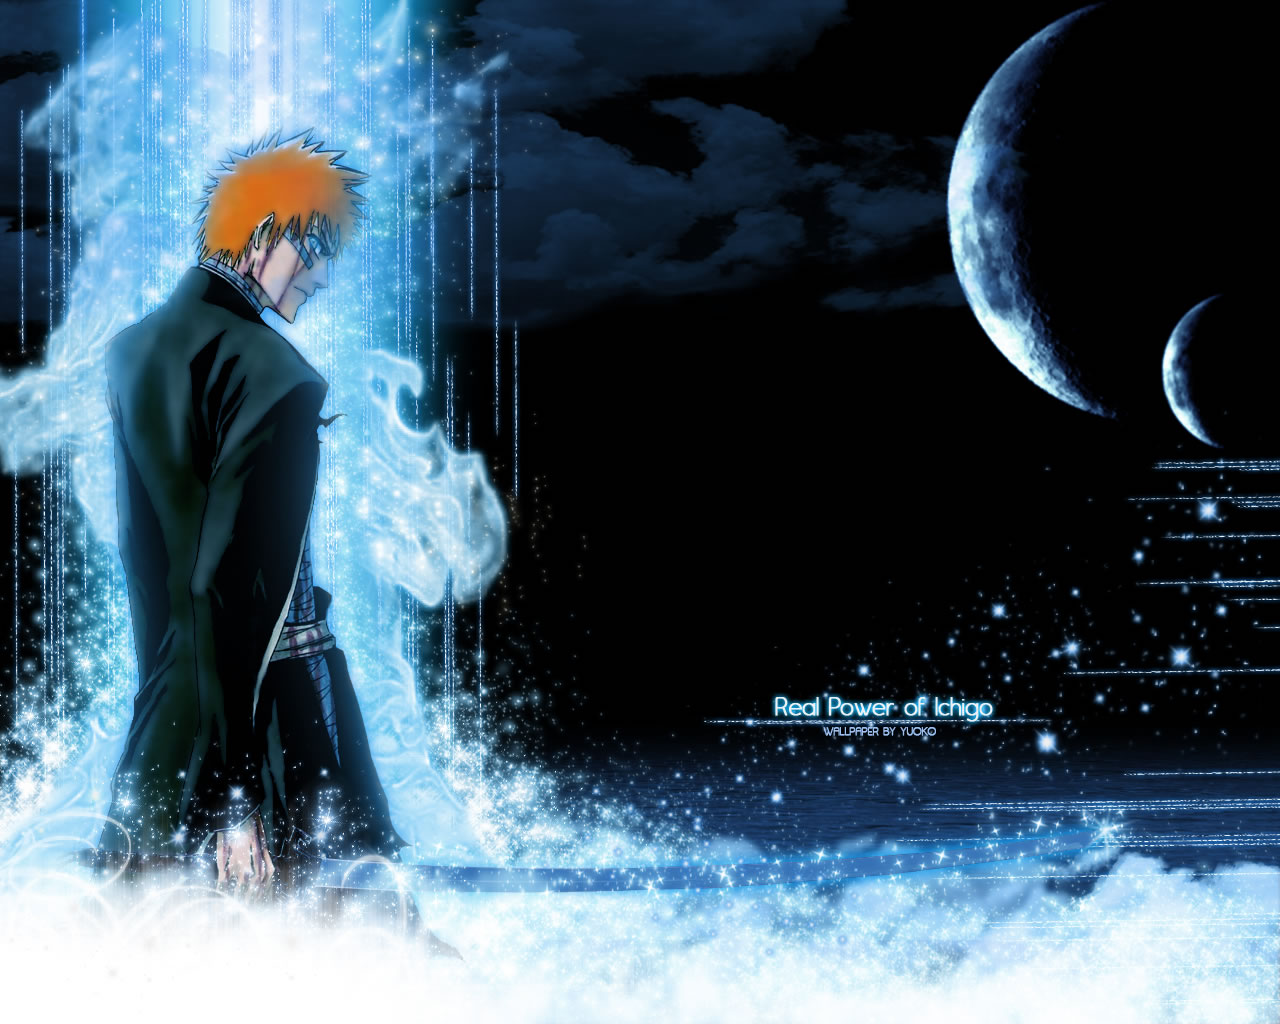 http://www.anime-kun.net/wallpapers/walls/bleach06.jpg